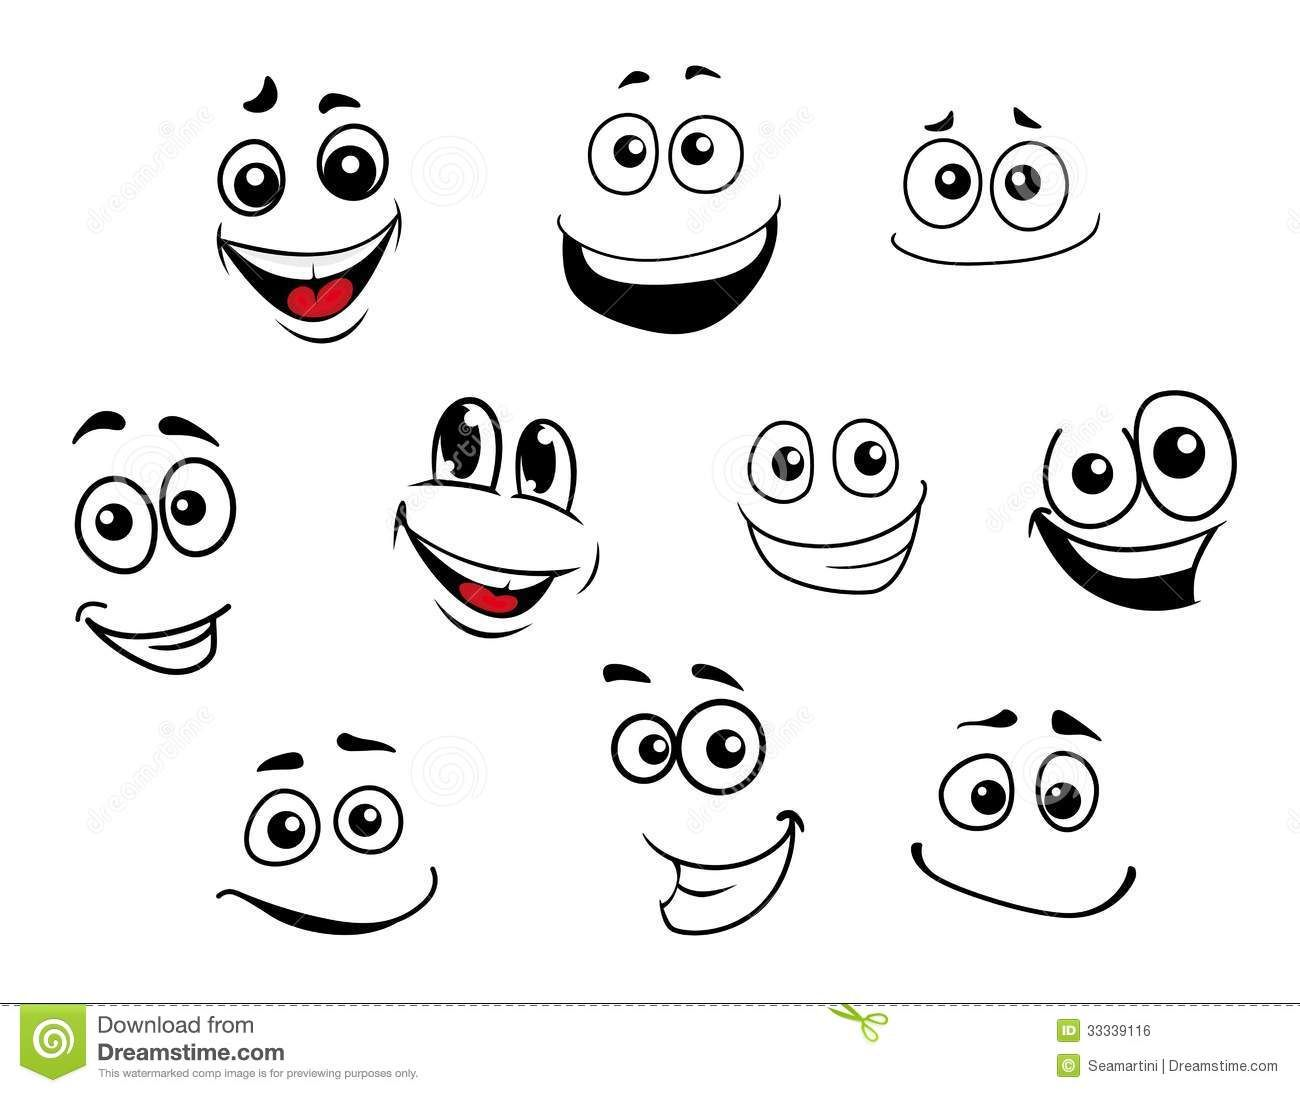 image result for drawing funny faces wine glasses pinterest rh pinterest com funny cartoons faces pictures funny faces cartoons images